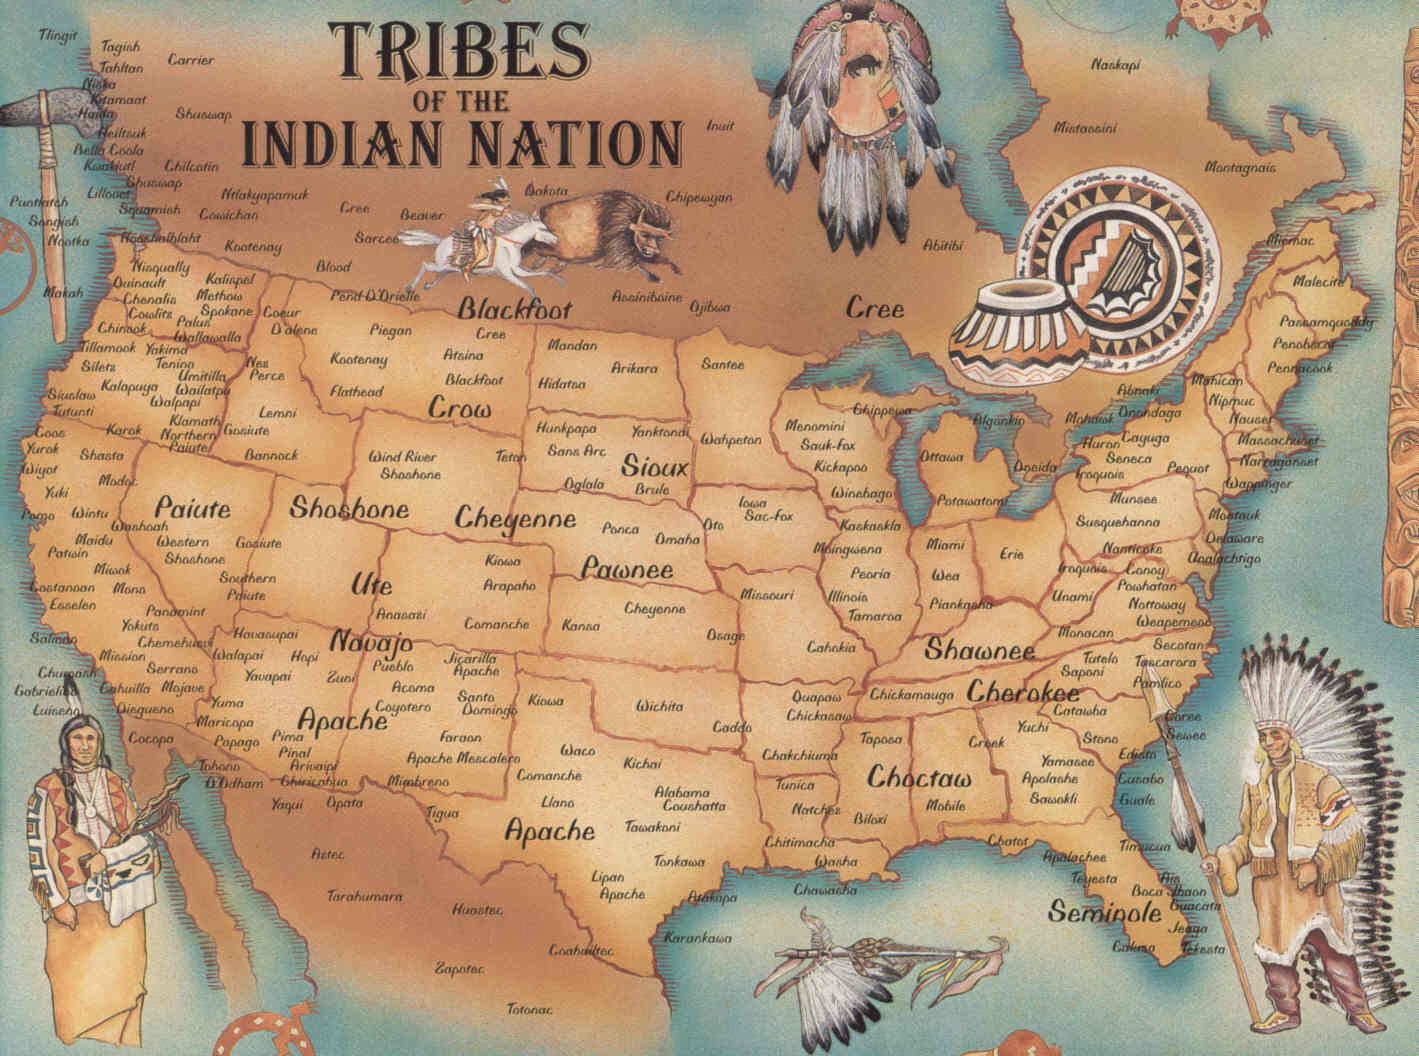 Maps Of Native American Tribes Indian Reservations In The United States Indian Reservation Native Americans And Native American Tribes